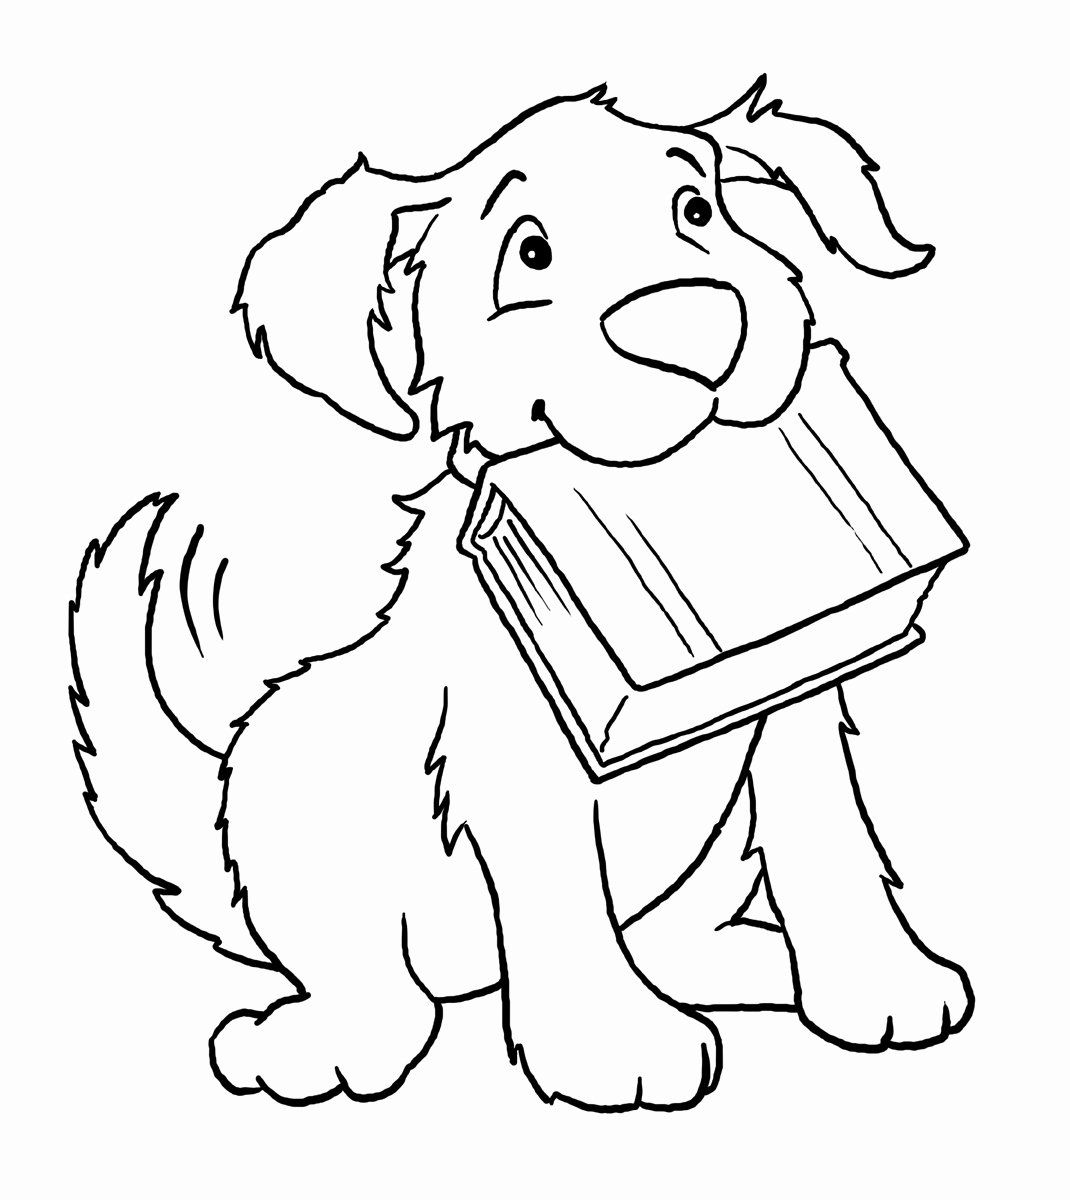 Free Dog Coloring Pages Beautiful Free Printable Dog Coloring